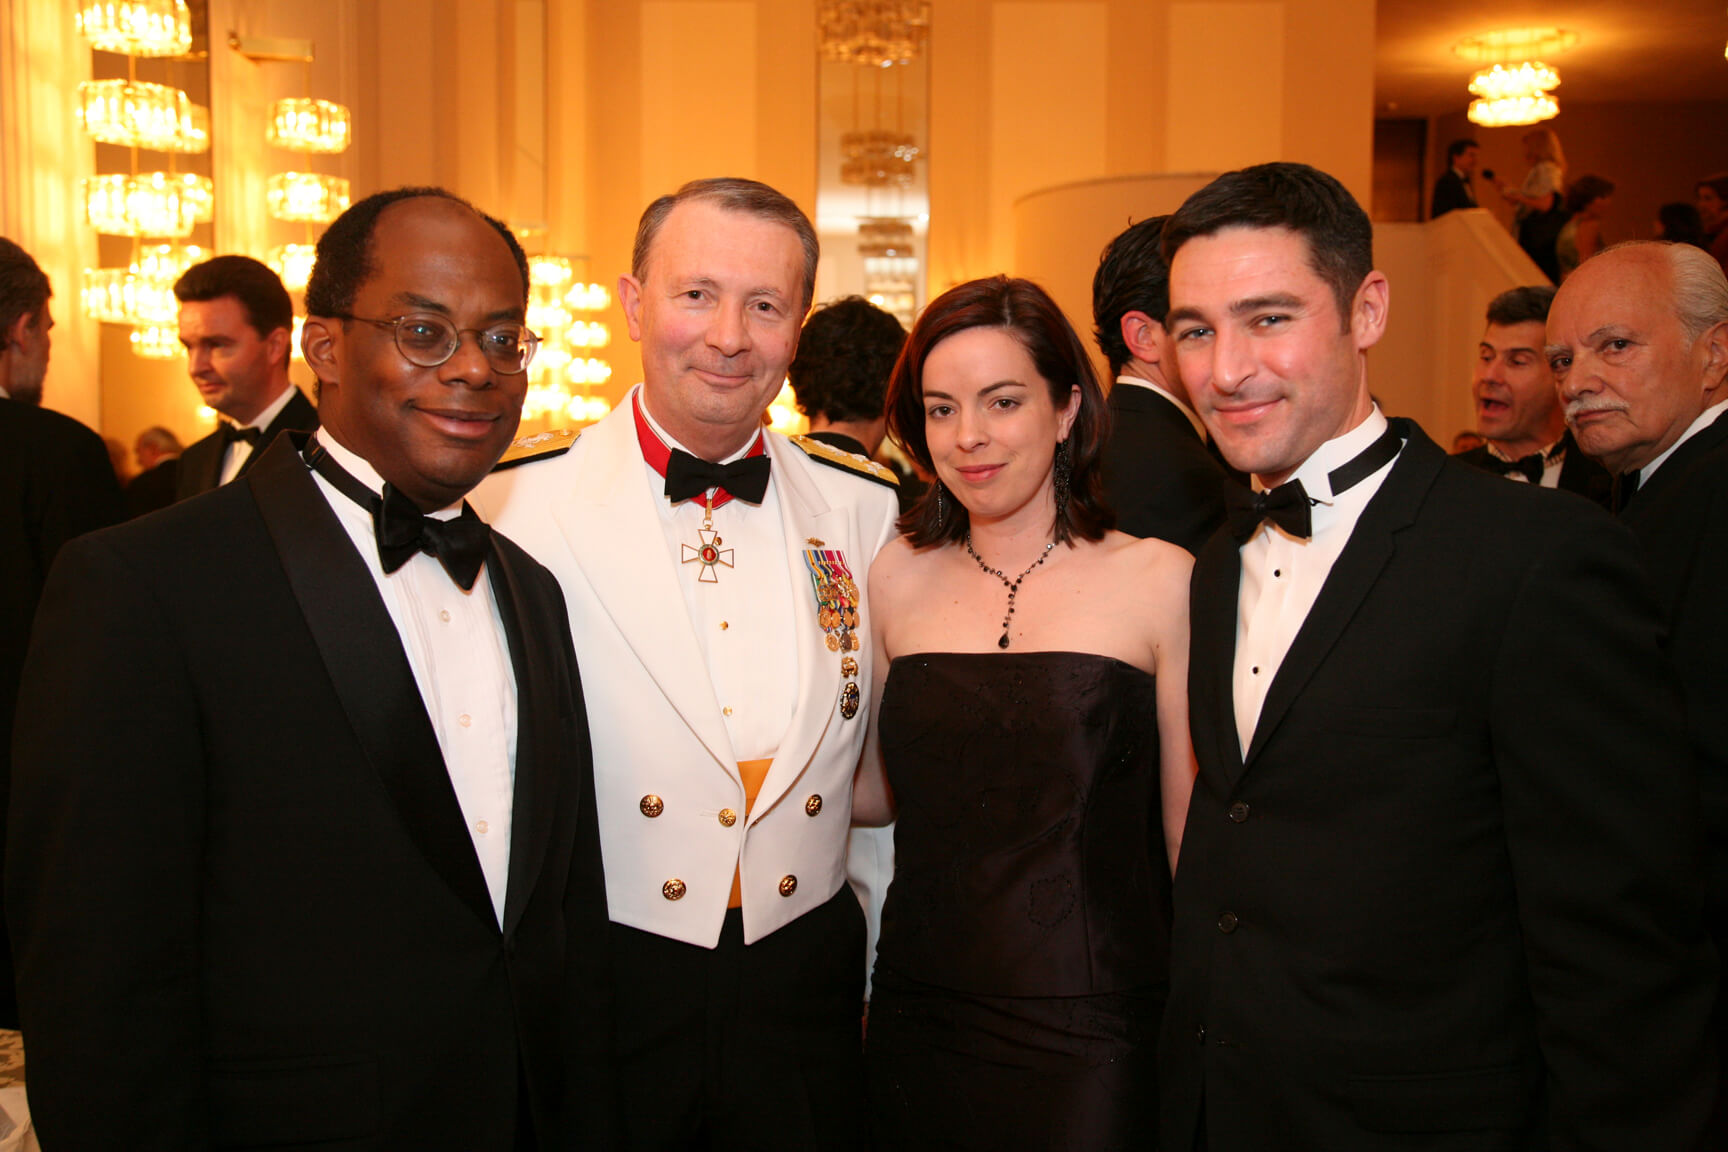 Honorable Roger Ferguson former Vice-Chairman of the Board of Governors of the Federal Reserve; Admiral Edmund P. Giambastiani Vice Chairman Joint Chiefs of Staff; White House Aide, Ms. Laura Hall, and Damon Wilson, Director for East, Central and Northern Europe, National Security Council